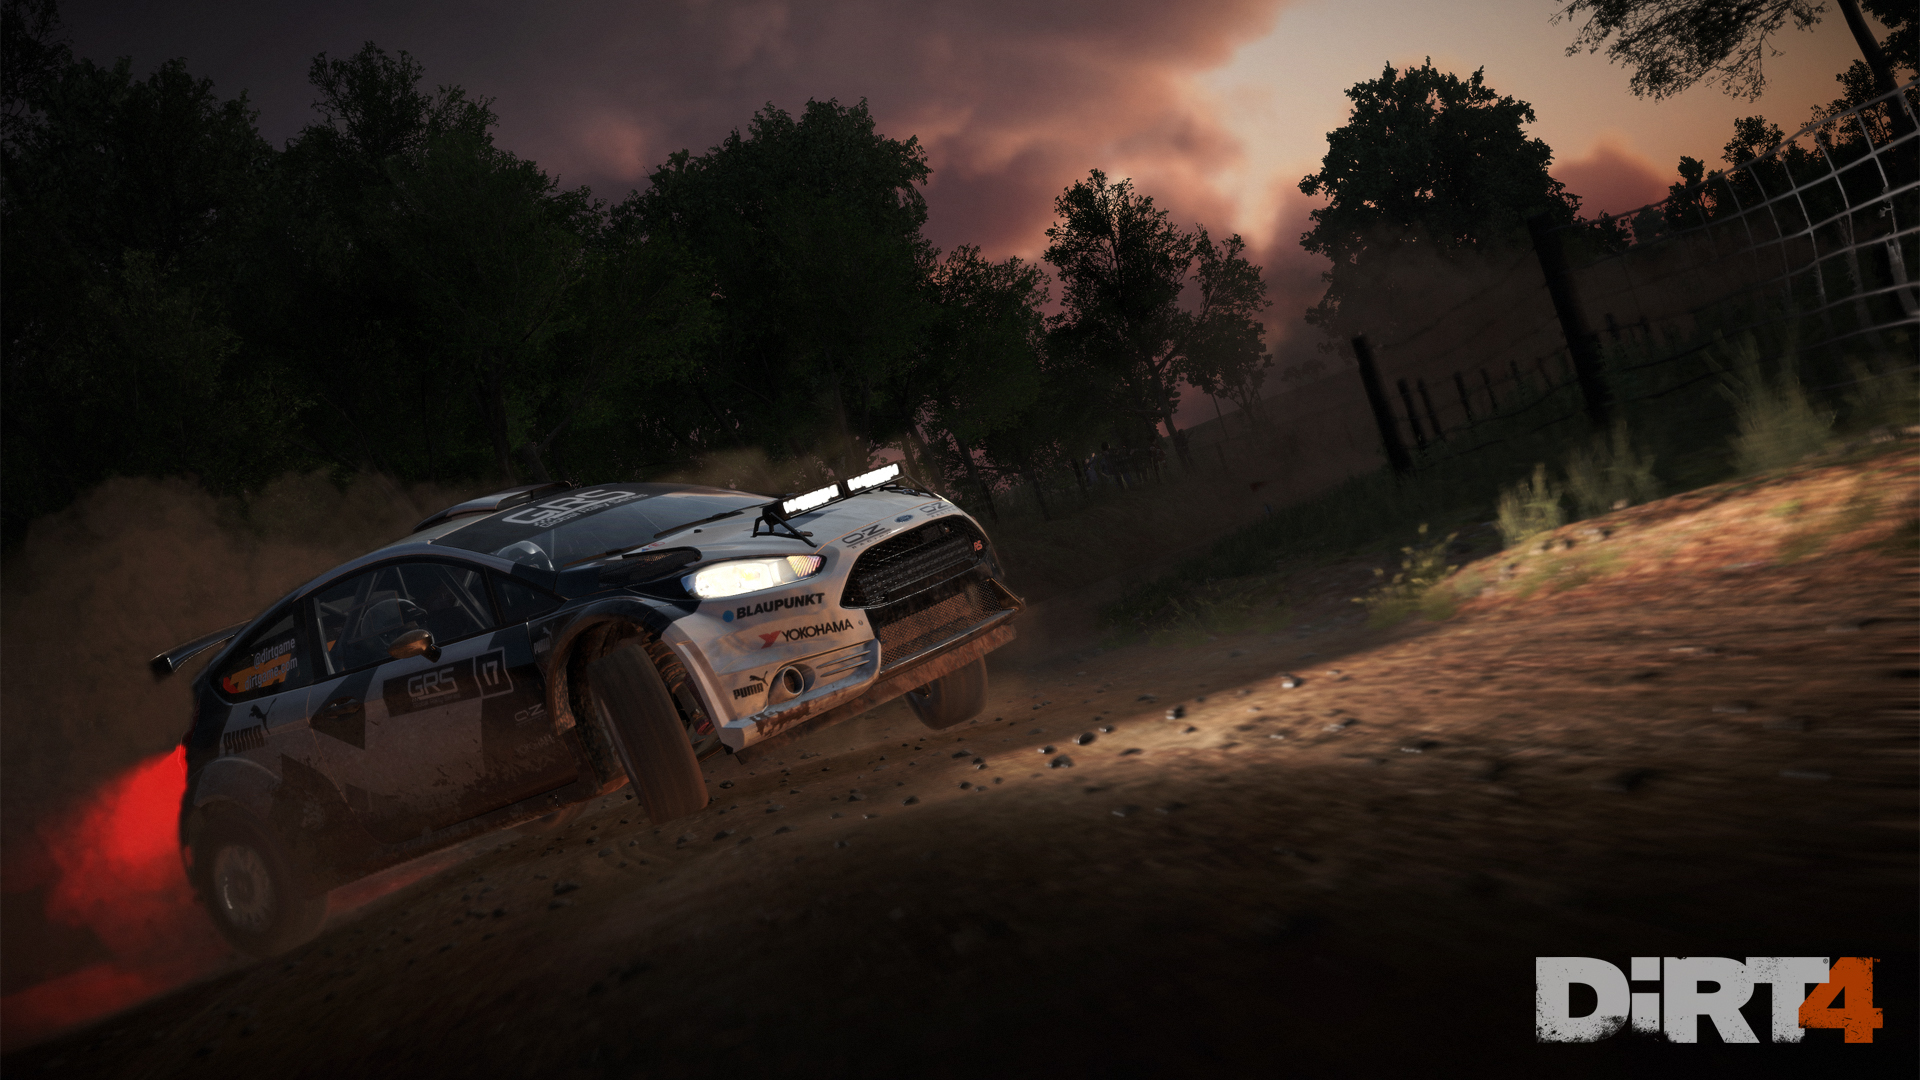 DiRT4 - screen - Fiesta - Australia - night light